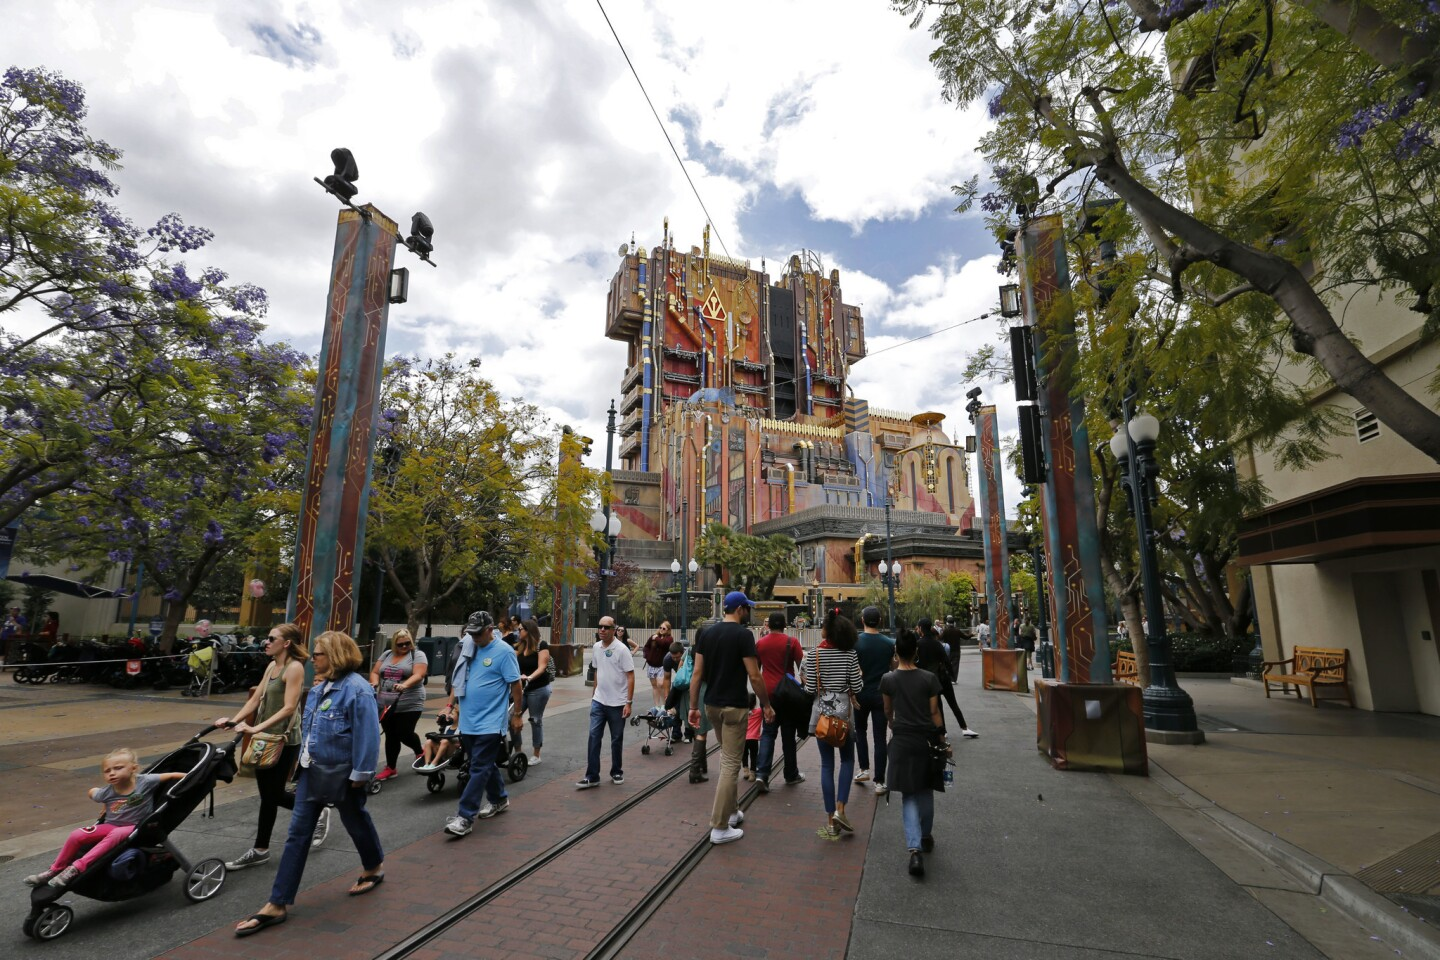 Disney's Guardians of the Galaxy Mission Breakout ride